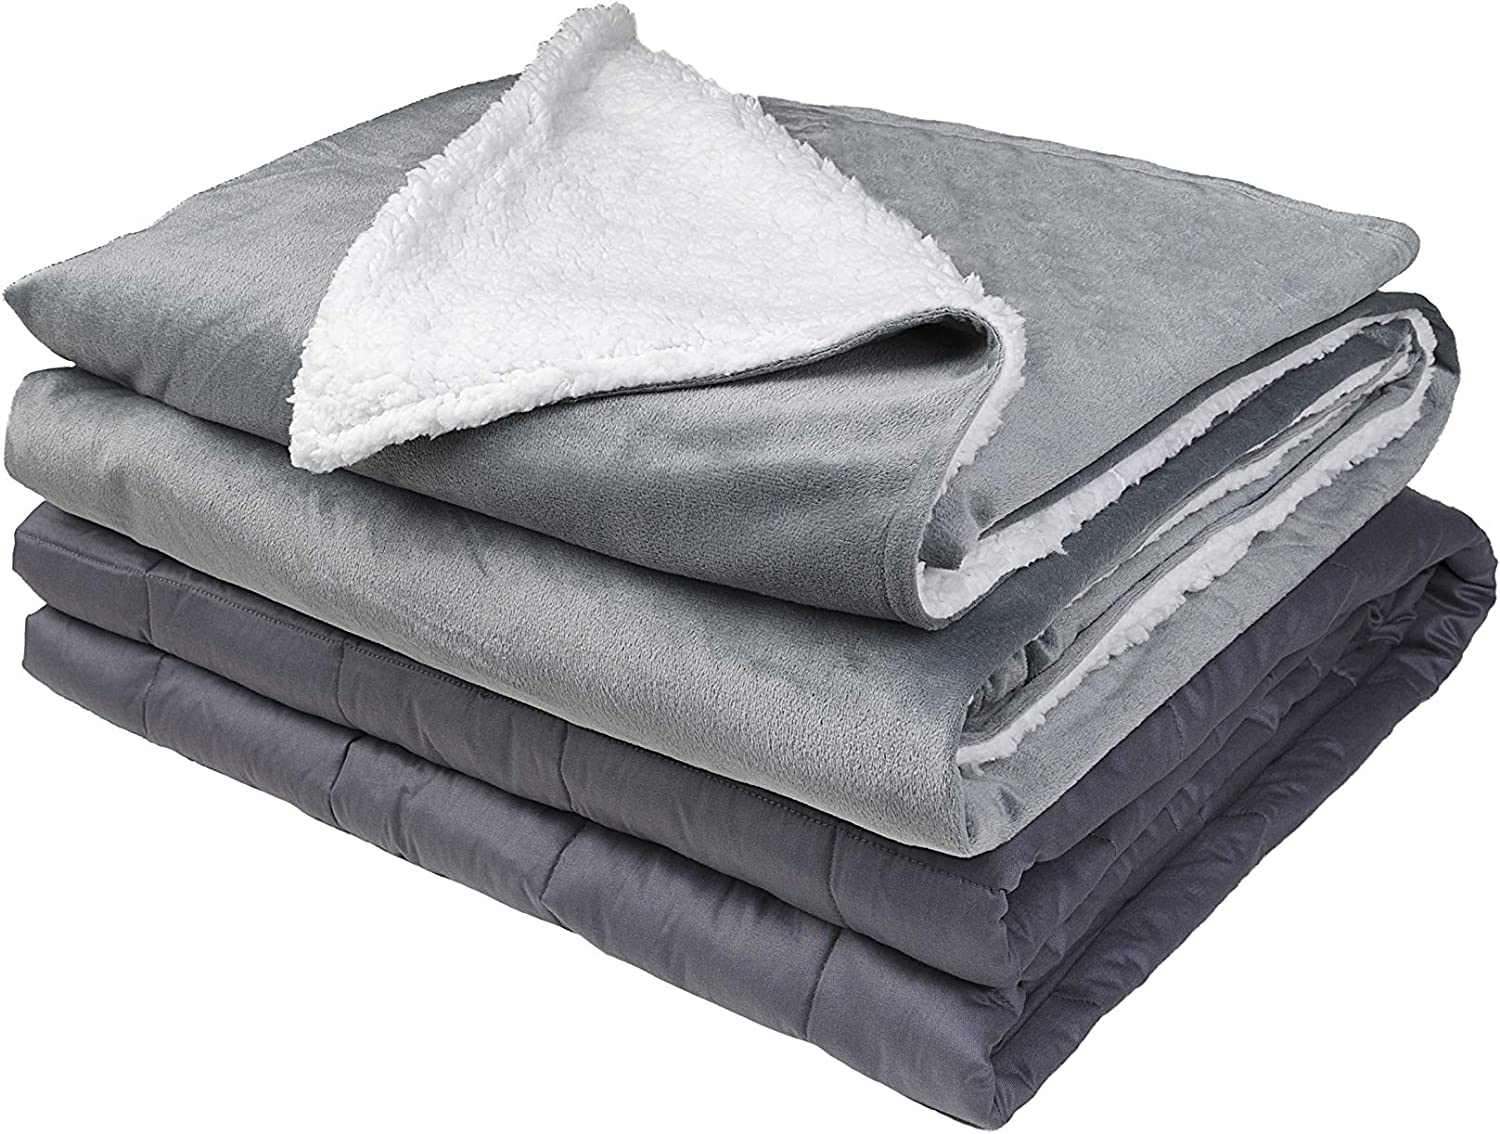 """Weighted Idea Weighted Blanket 15 Pounds with Sherpa & Minky Removable Cover 60"""" x 80 """" Queen Size with Premium Glass Beads"""